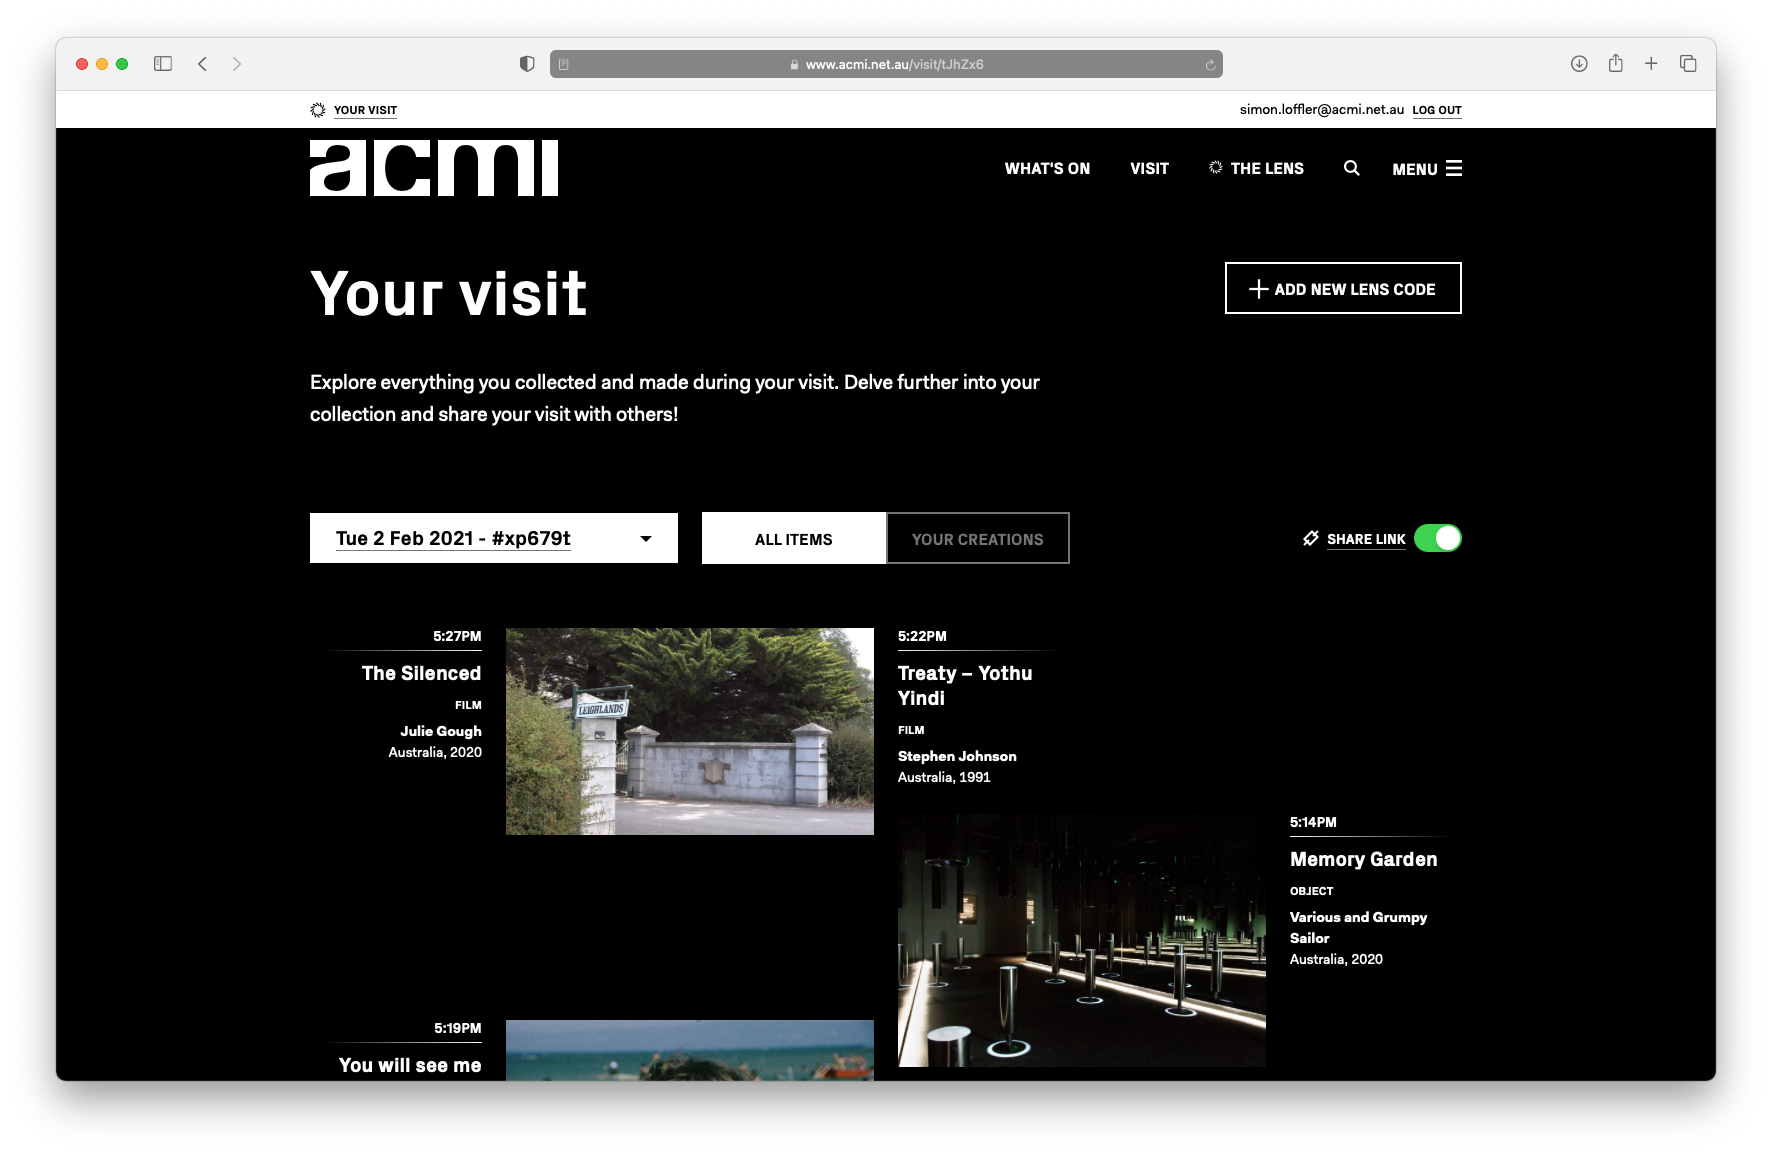 A screenshot of the ACMI post-visit website, showing your personal museum visit and everything you collected.